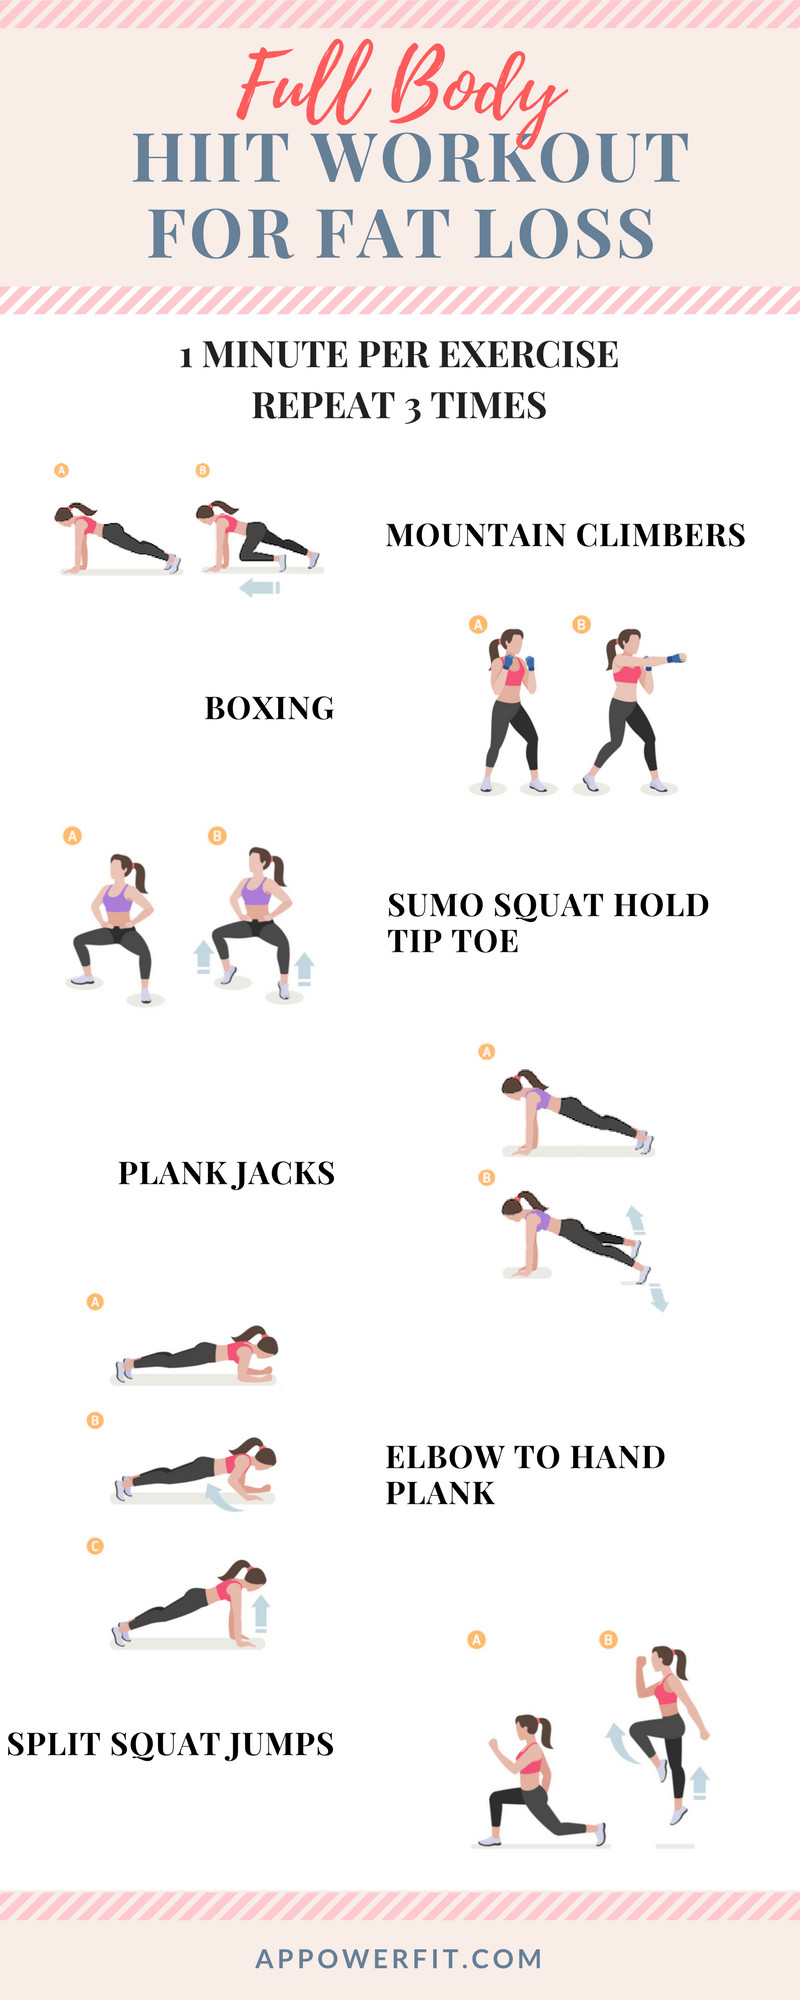 Fat Burning Workout For Men At Home Losing Weight  AP Power Fit HIIT For Fat Loss Full Body At Home HIIT